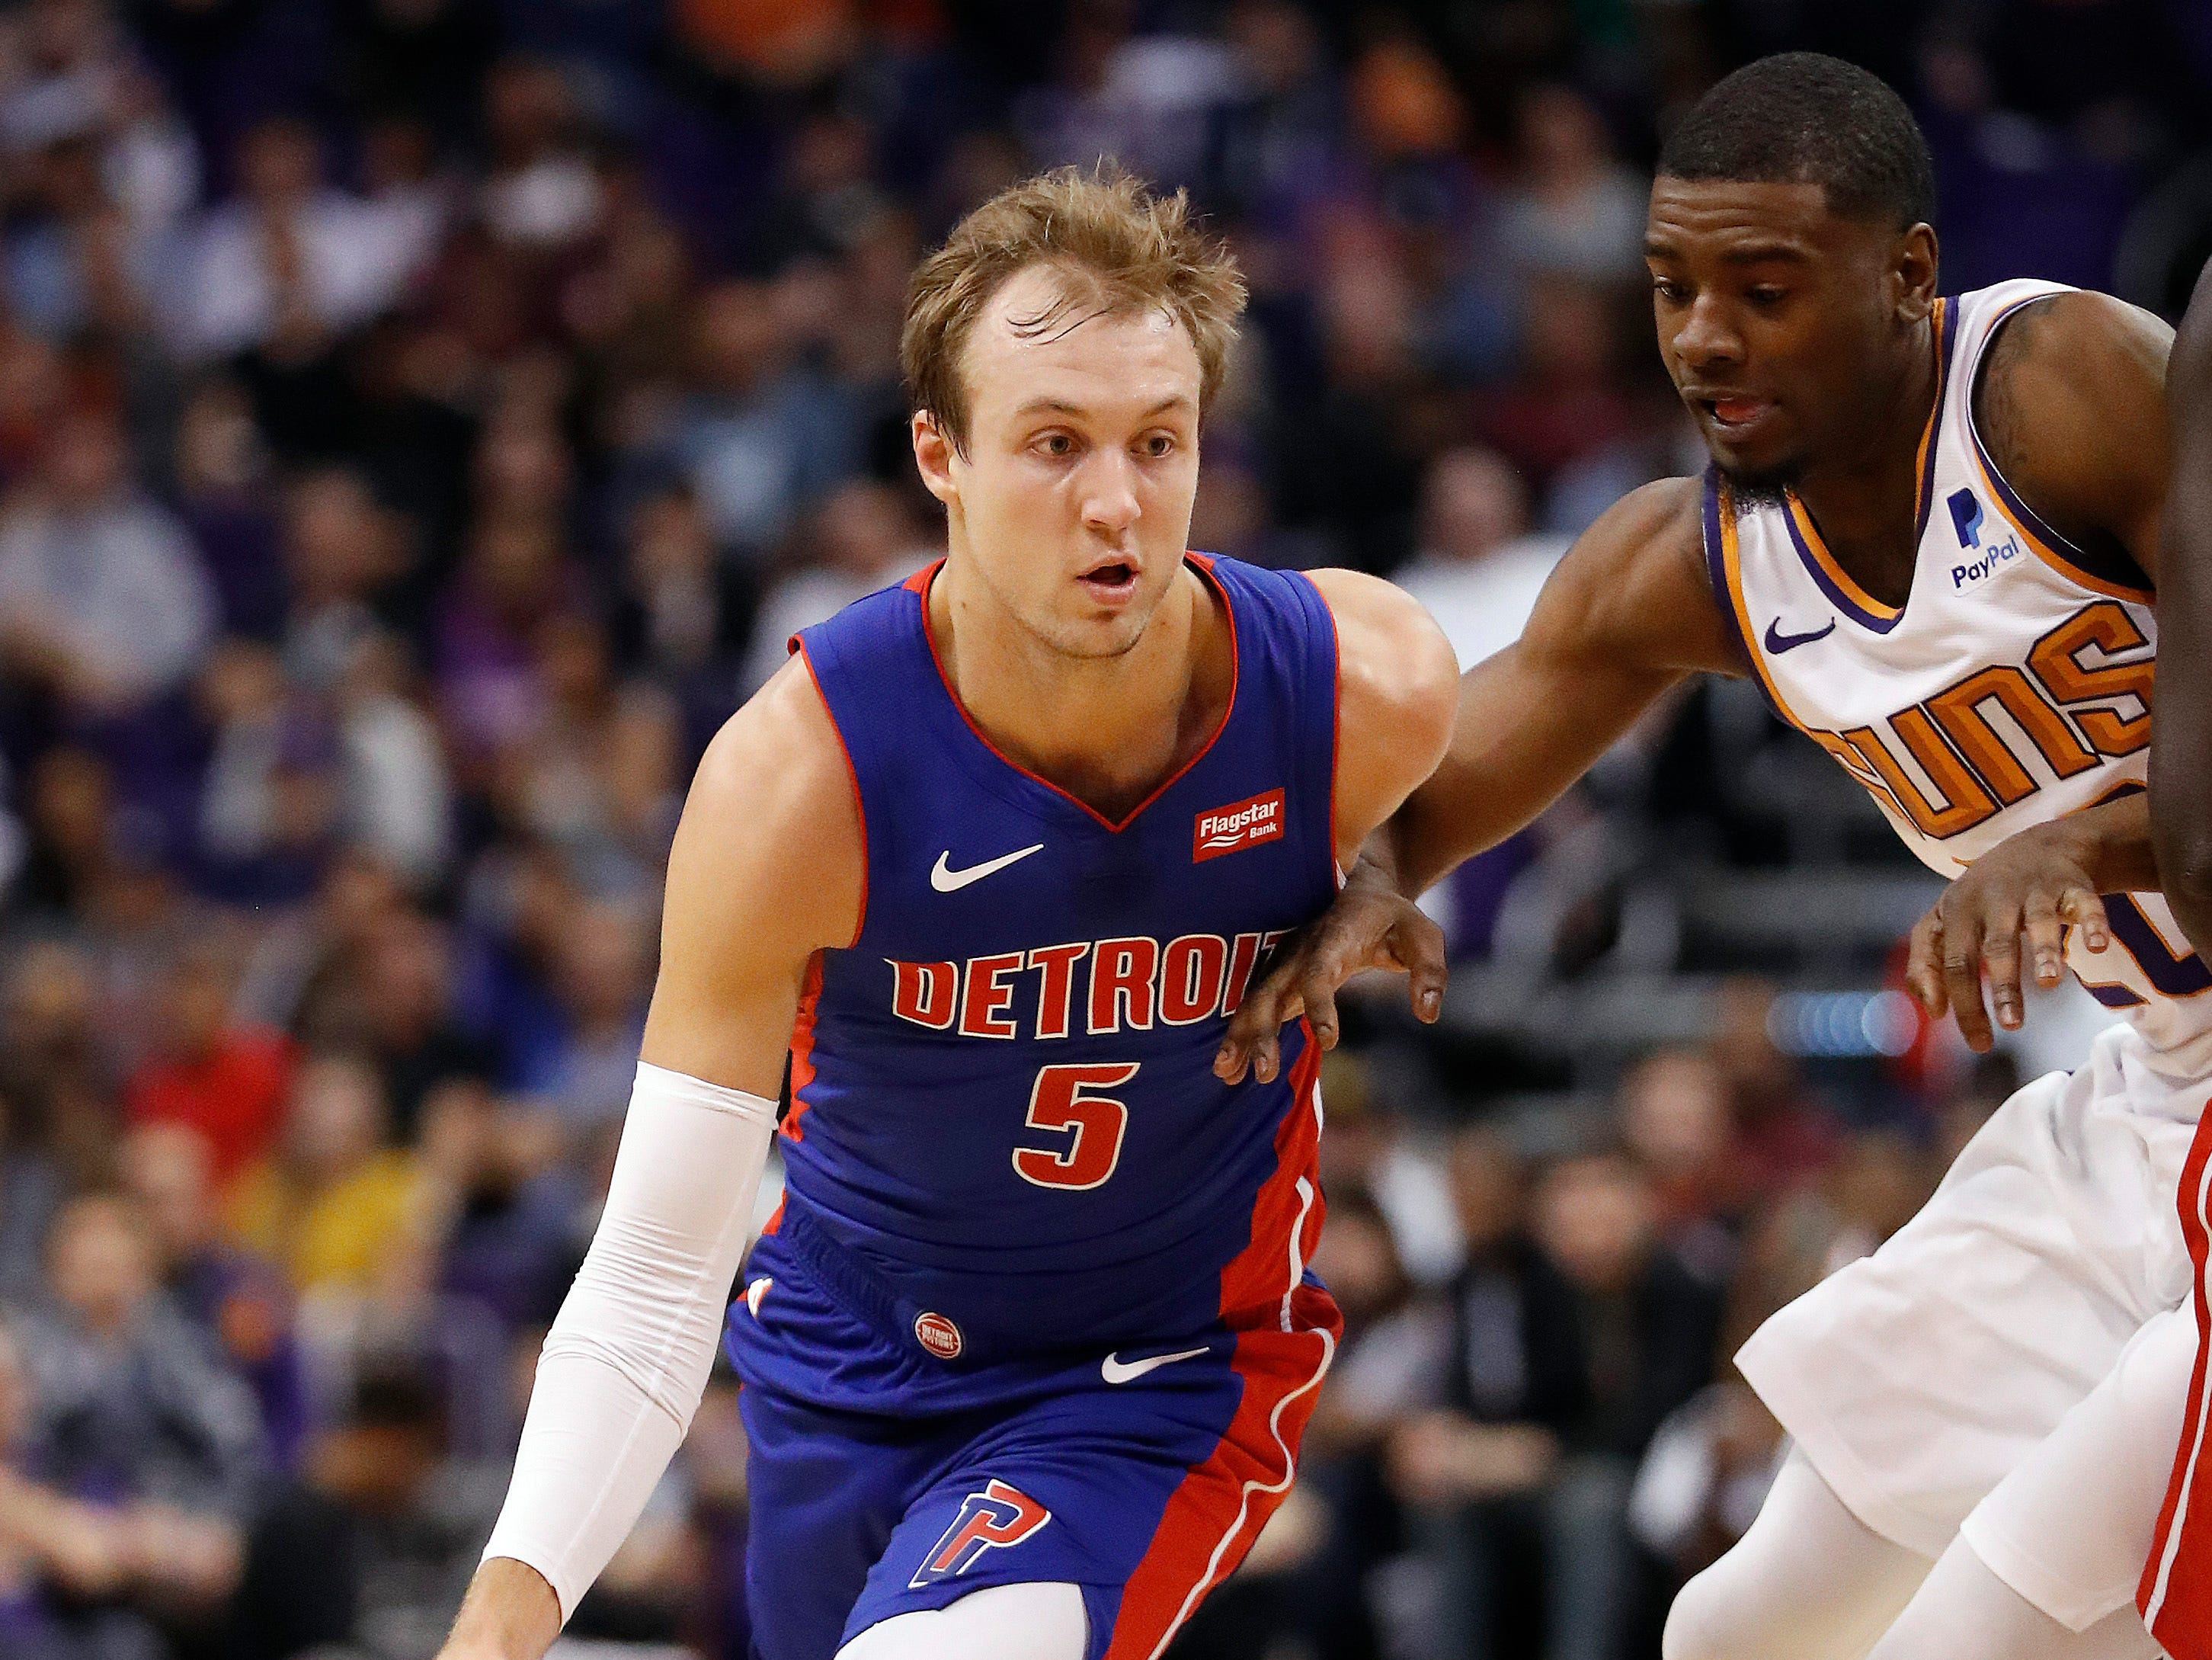 Detroit Pistons guard Luke Kennard (5) dries against the Phoenix Suns during the first half.